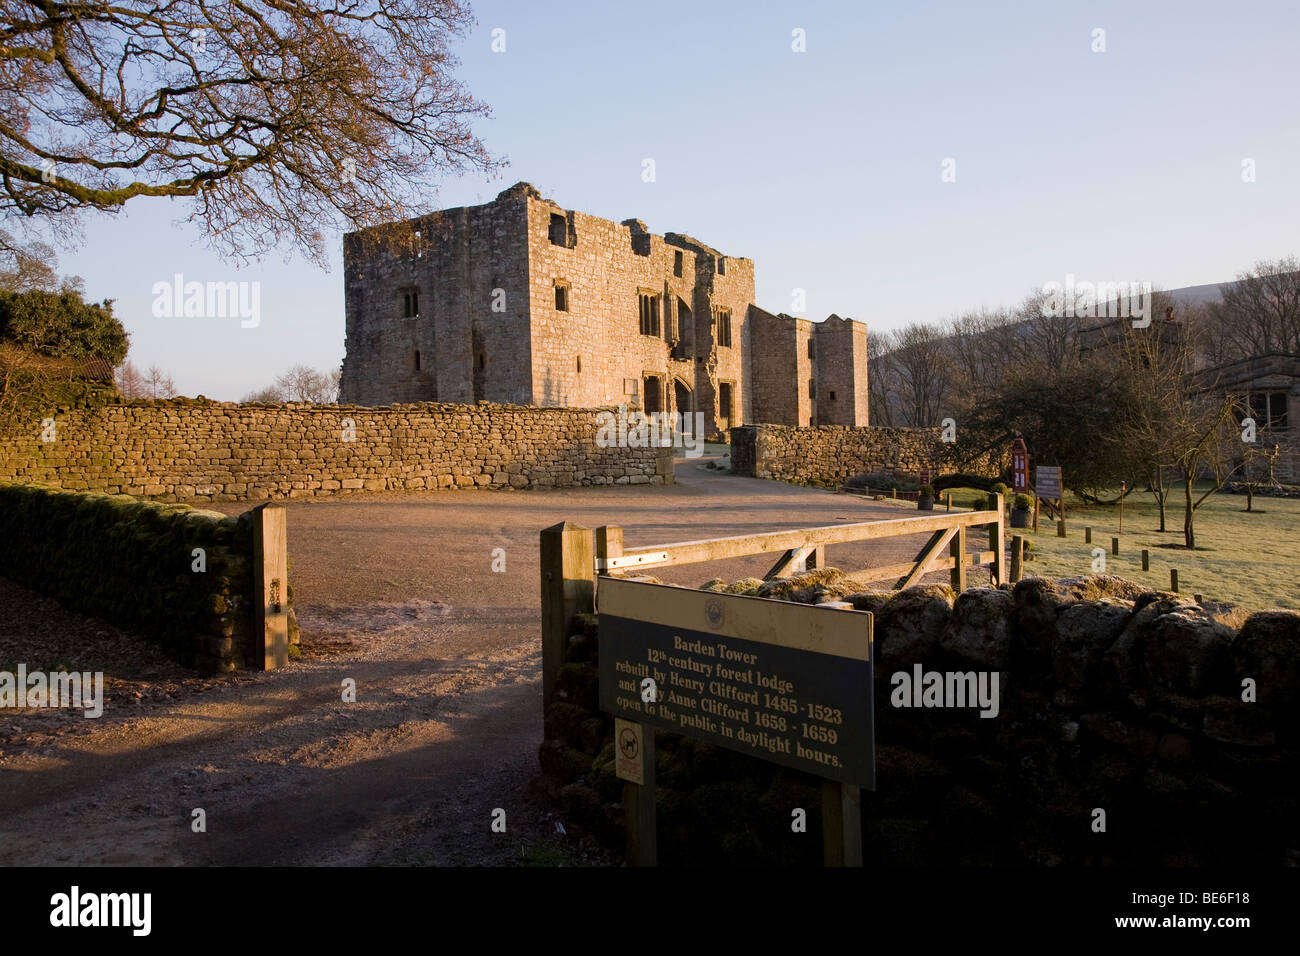 Barden Tower (sunlight on beautiful historic ancient ruin & information sign at entrance gate) - Bolton Abbey Estate, Yorkshire Dales, England UK. Stock Photo